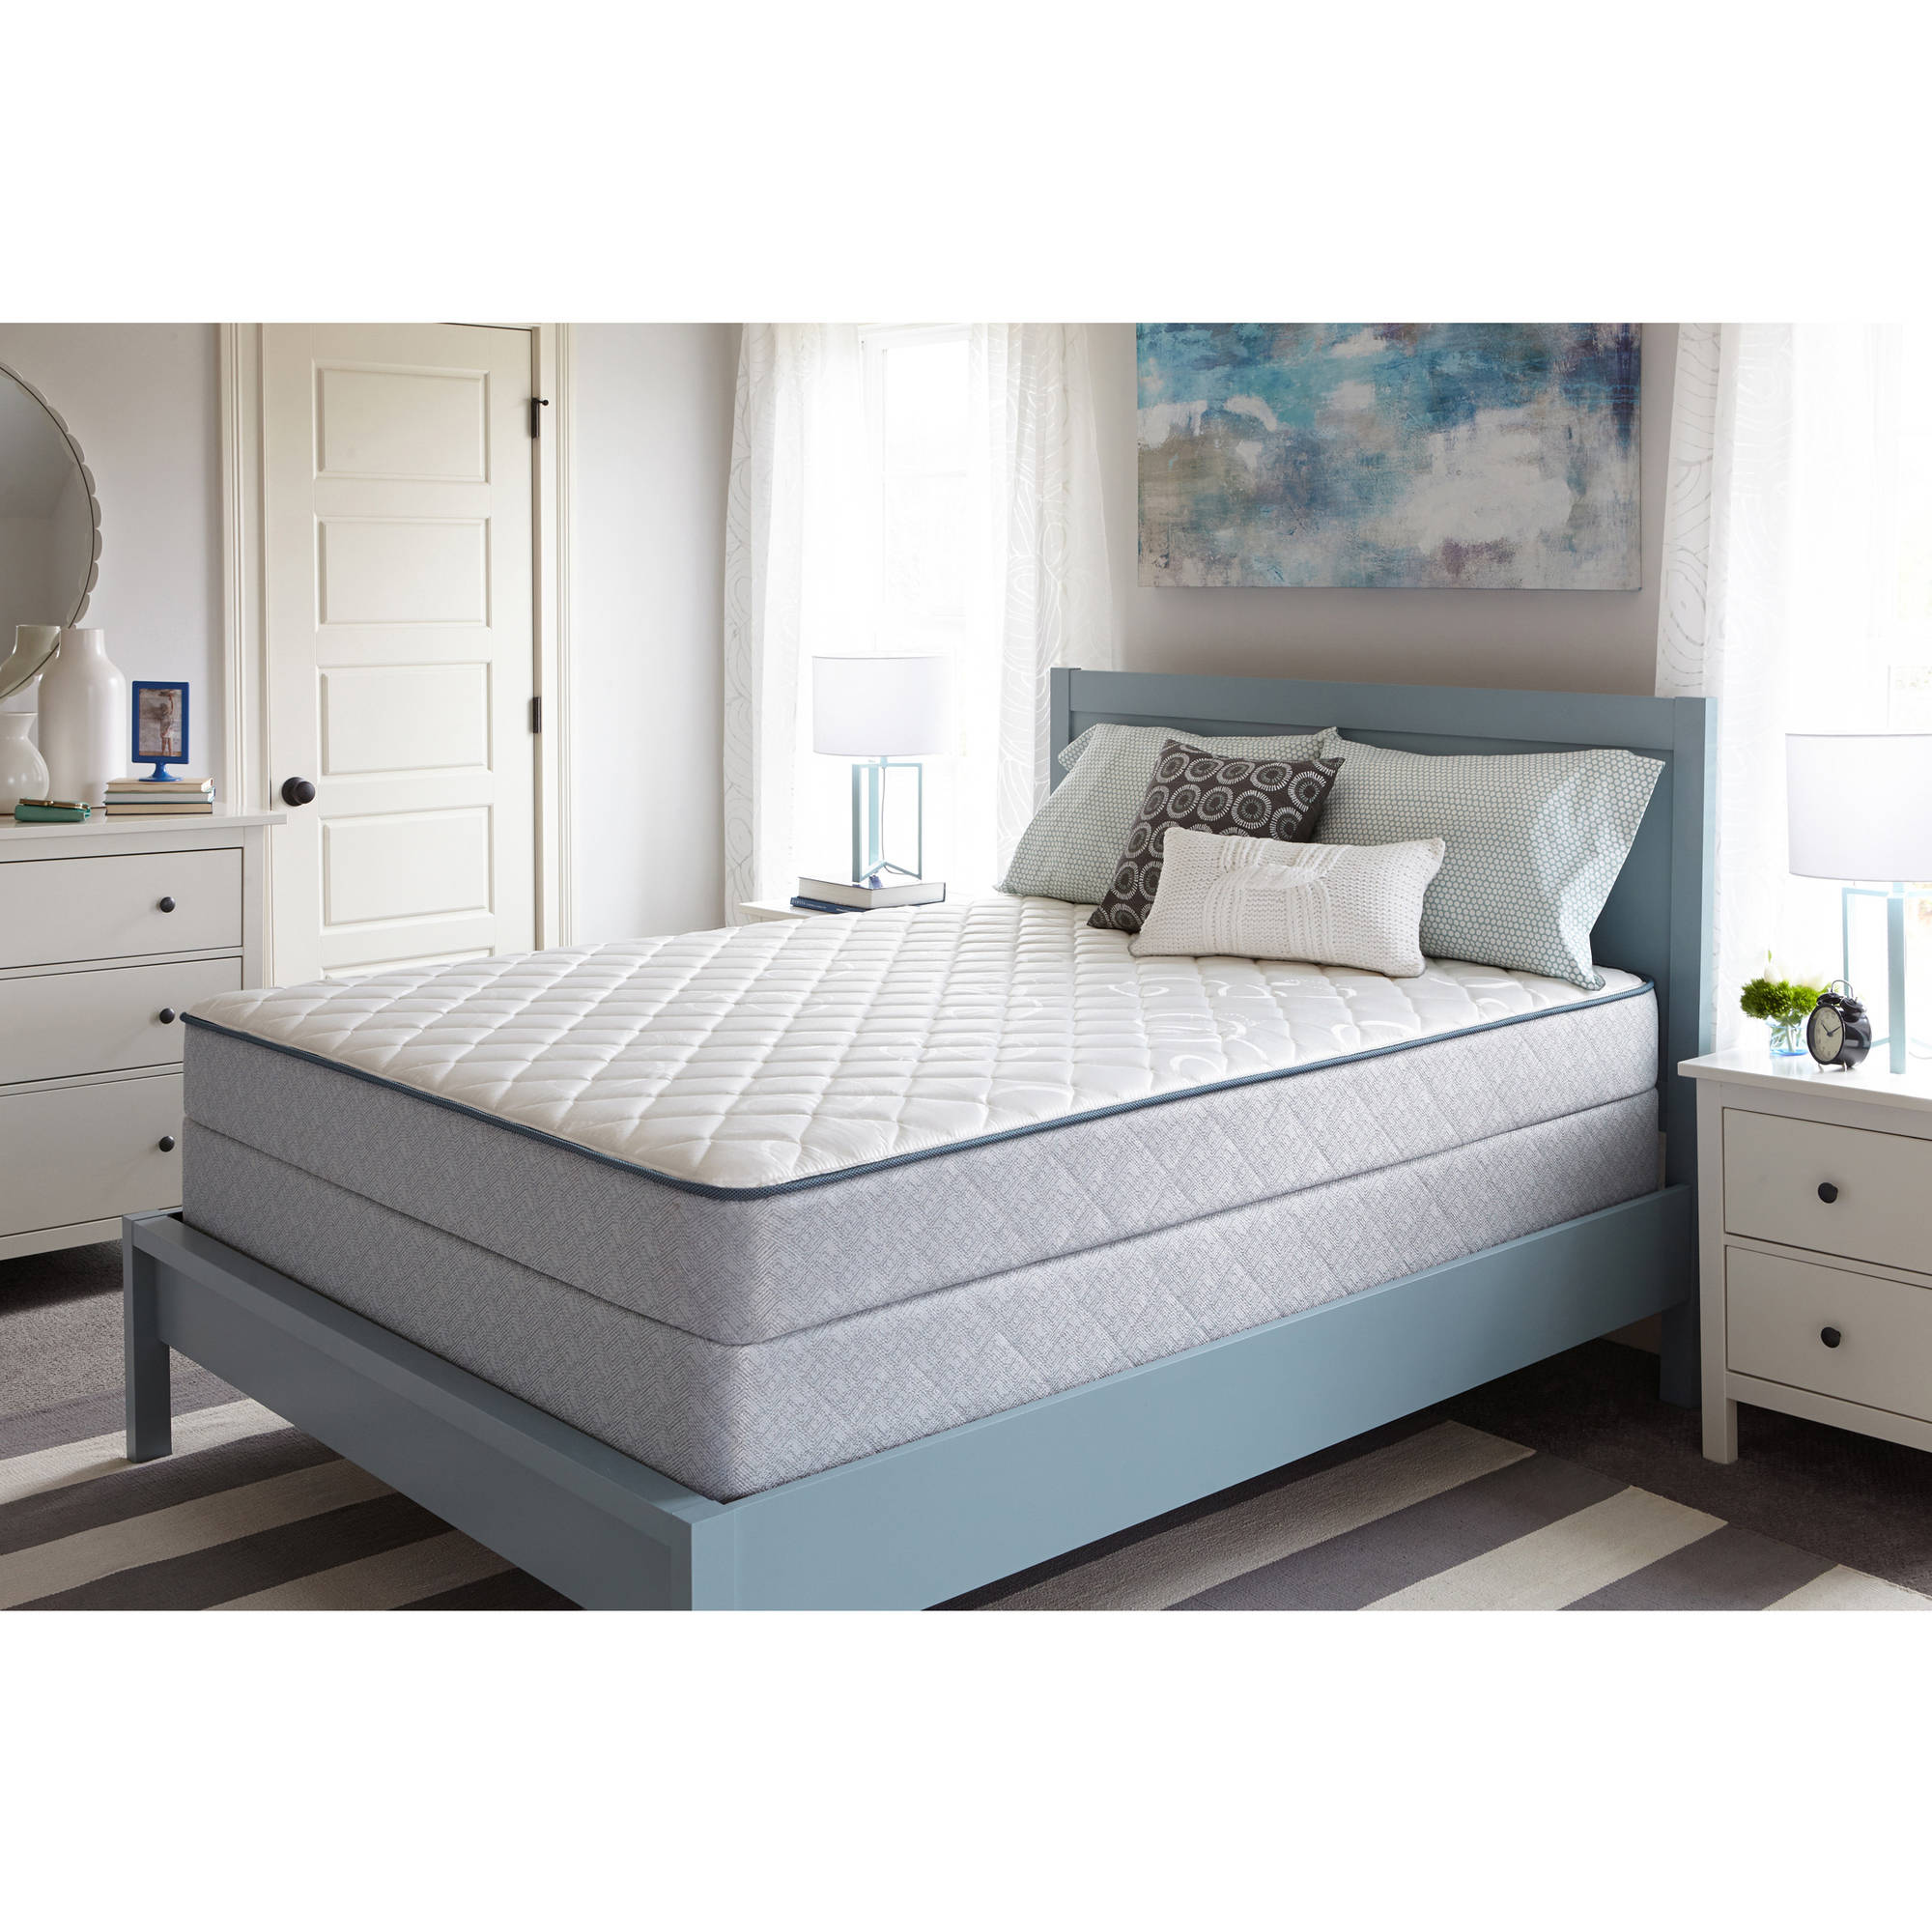 Sealy Brand Firm Fort Thomas Mattress, Multiple Sizes by Sealy